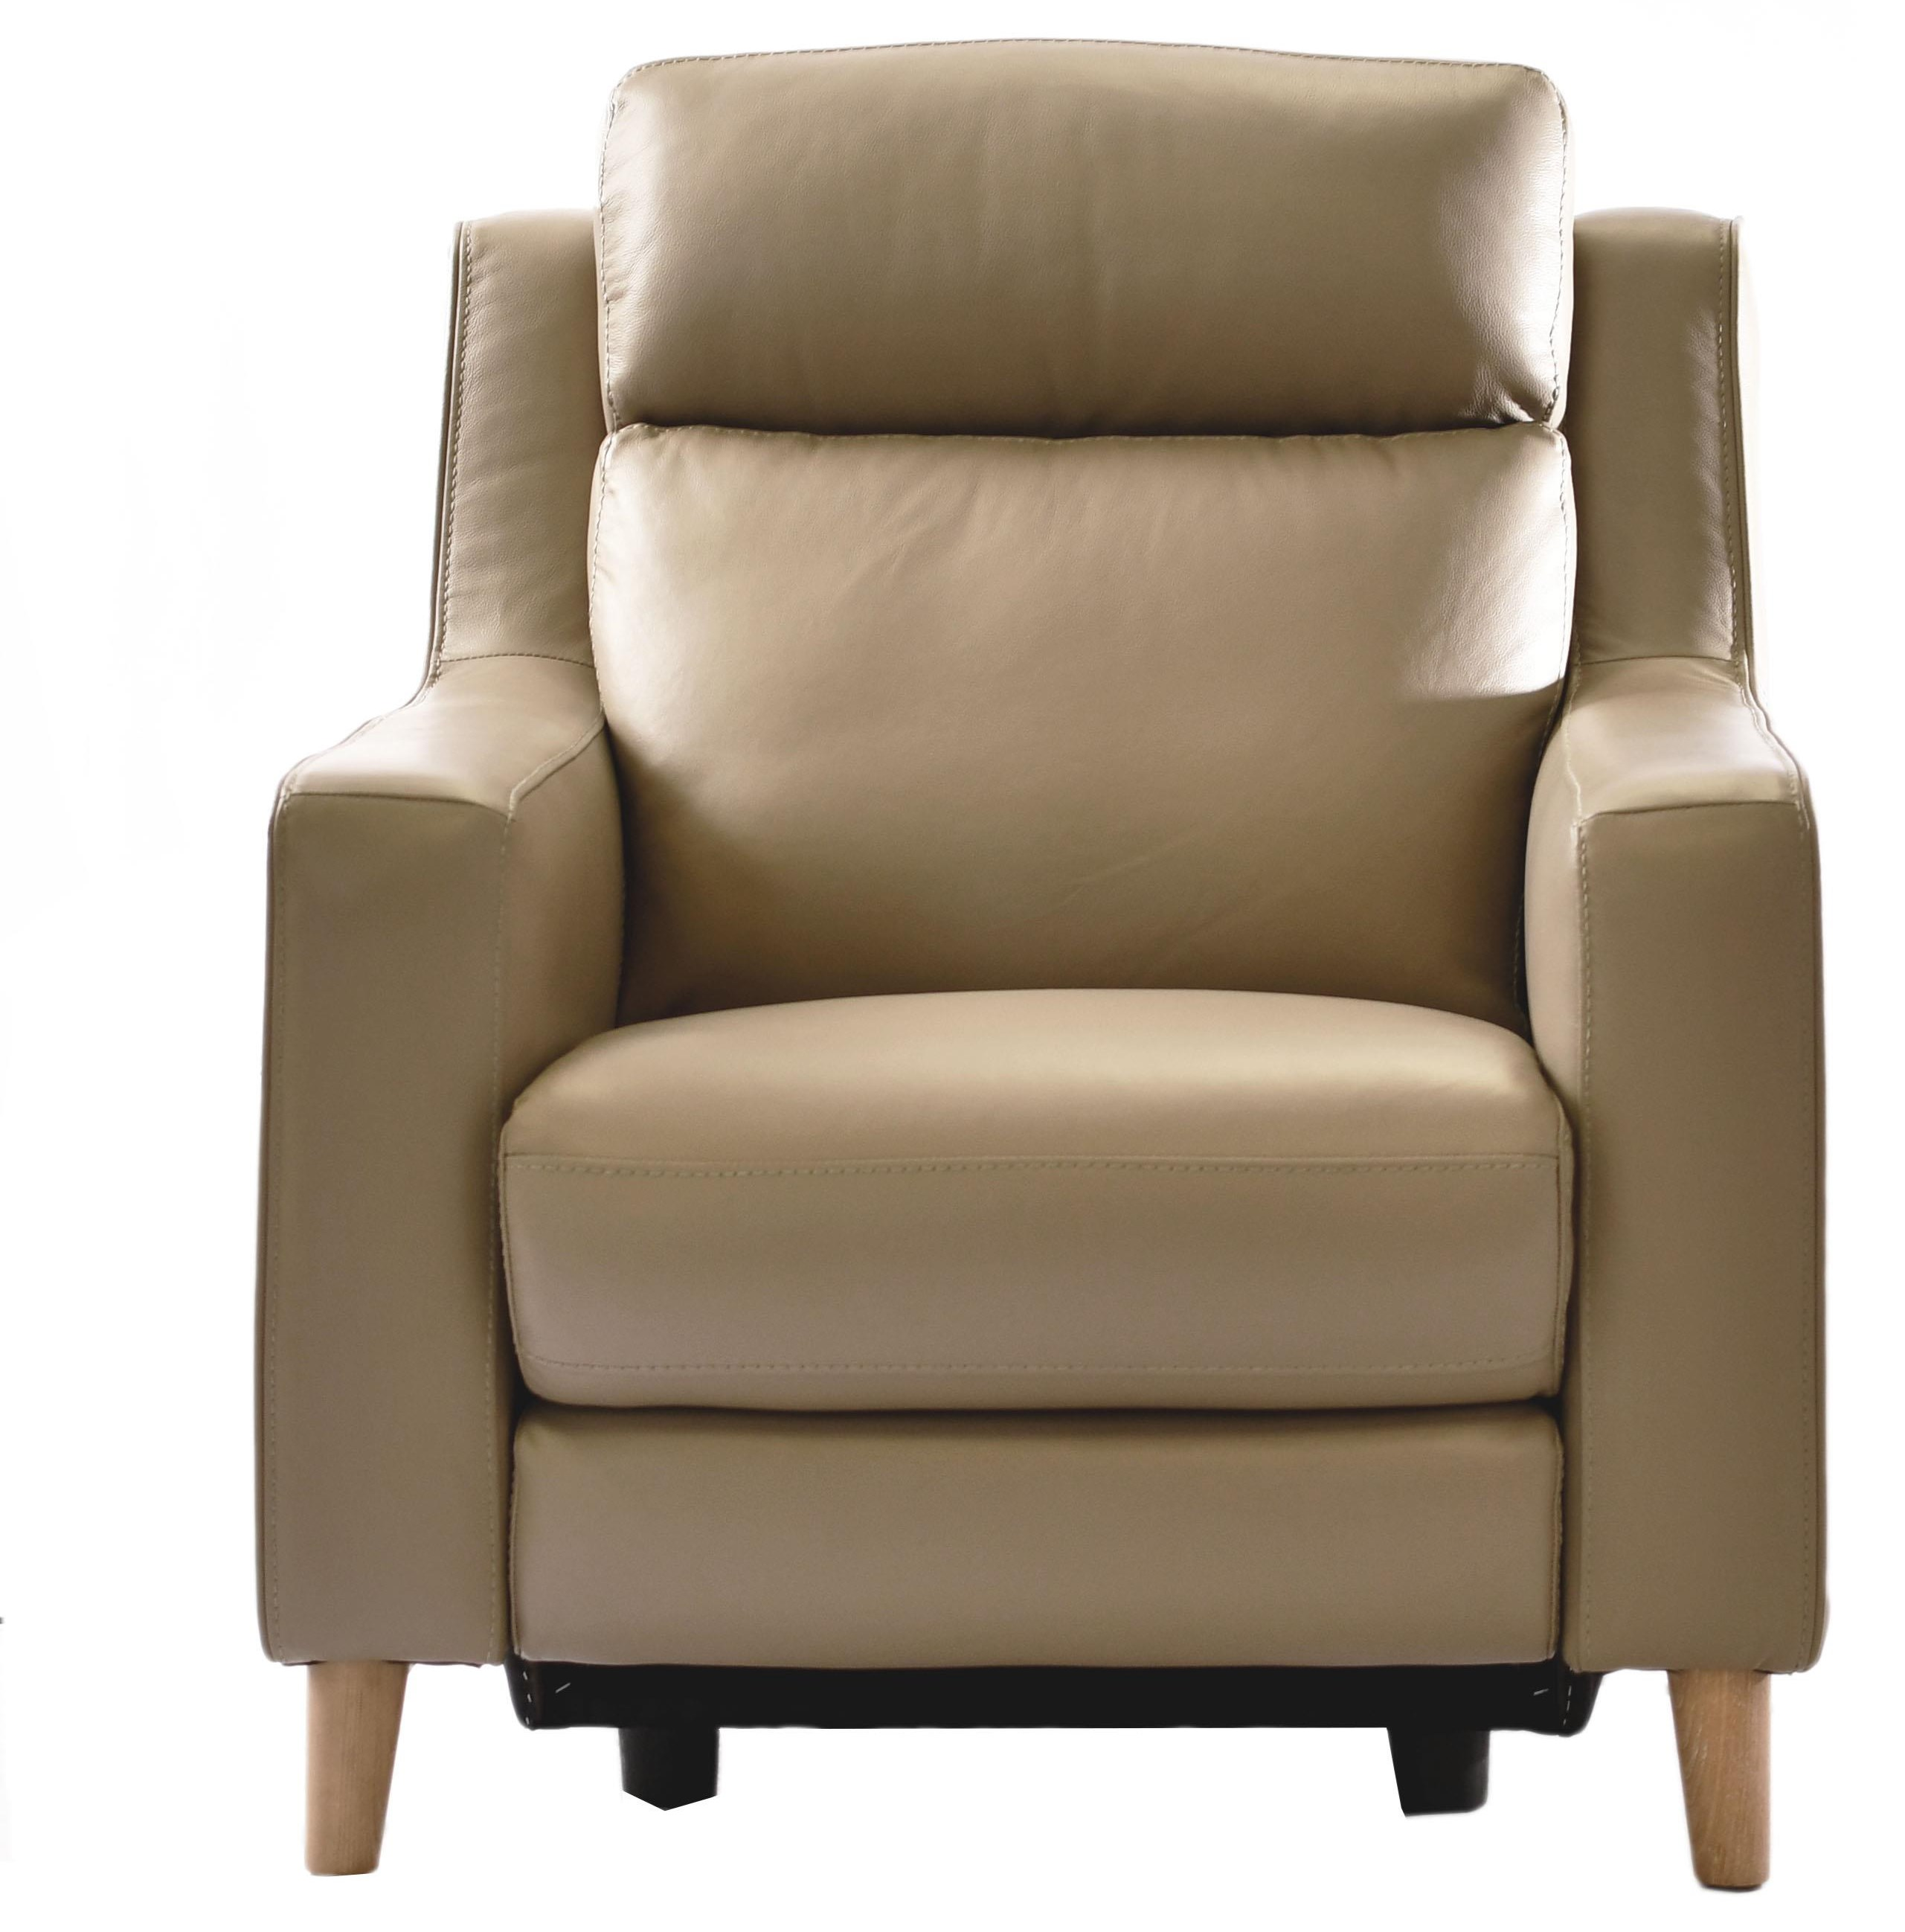 32097 Power Motion Sofa Leather Power Motion Chair at Bennett's Furniture and Mattresses